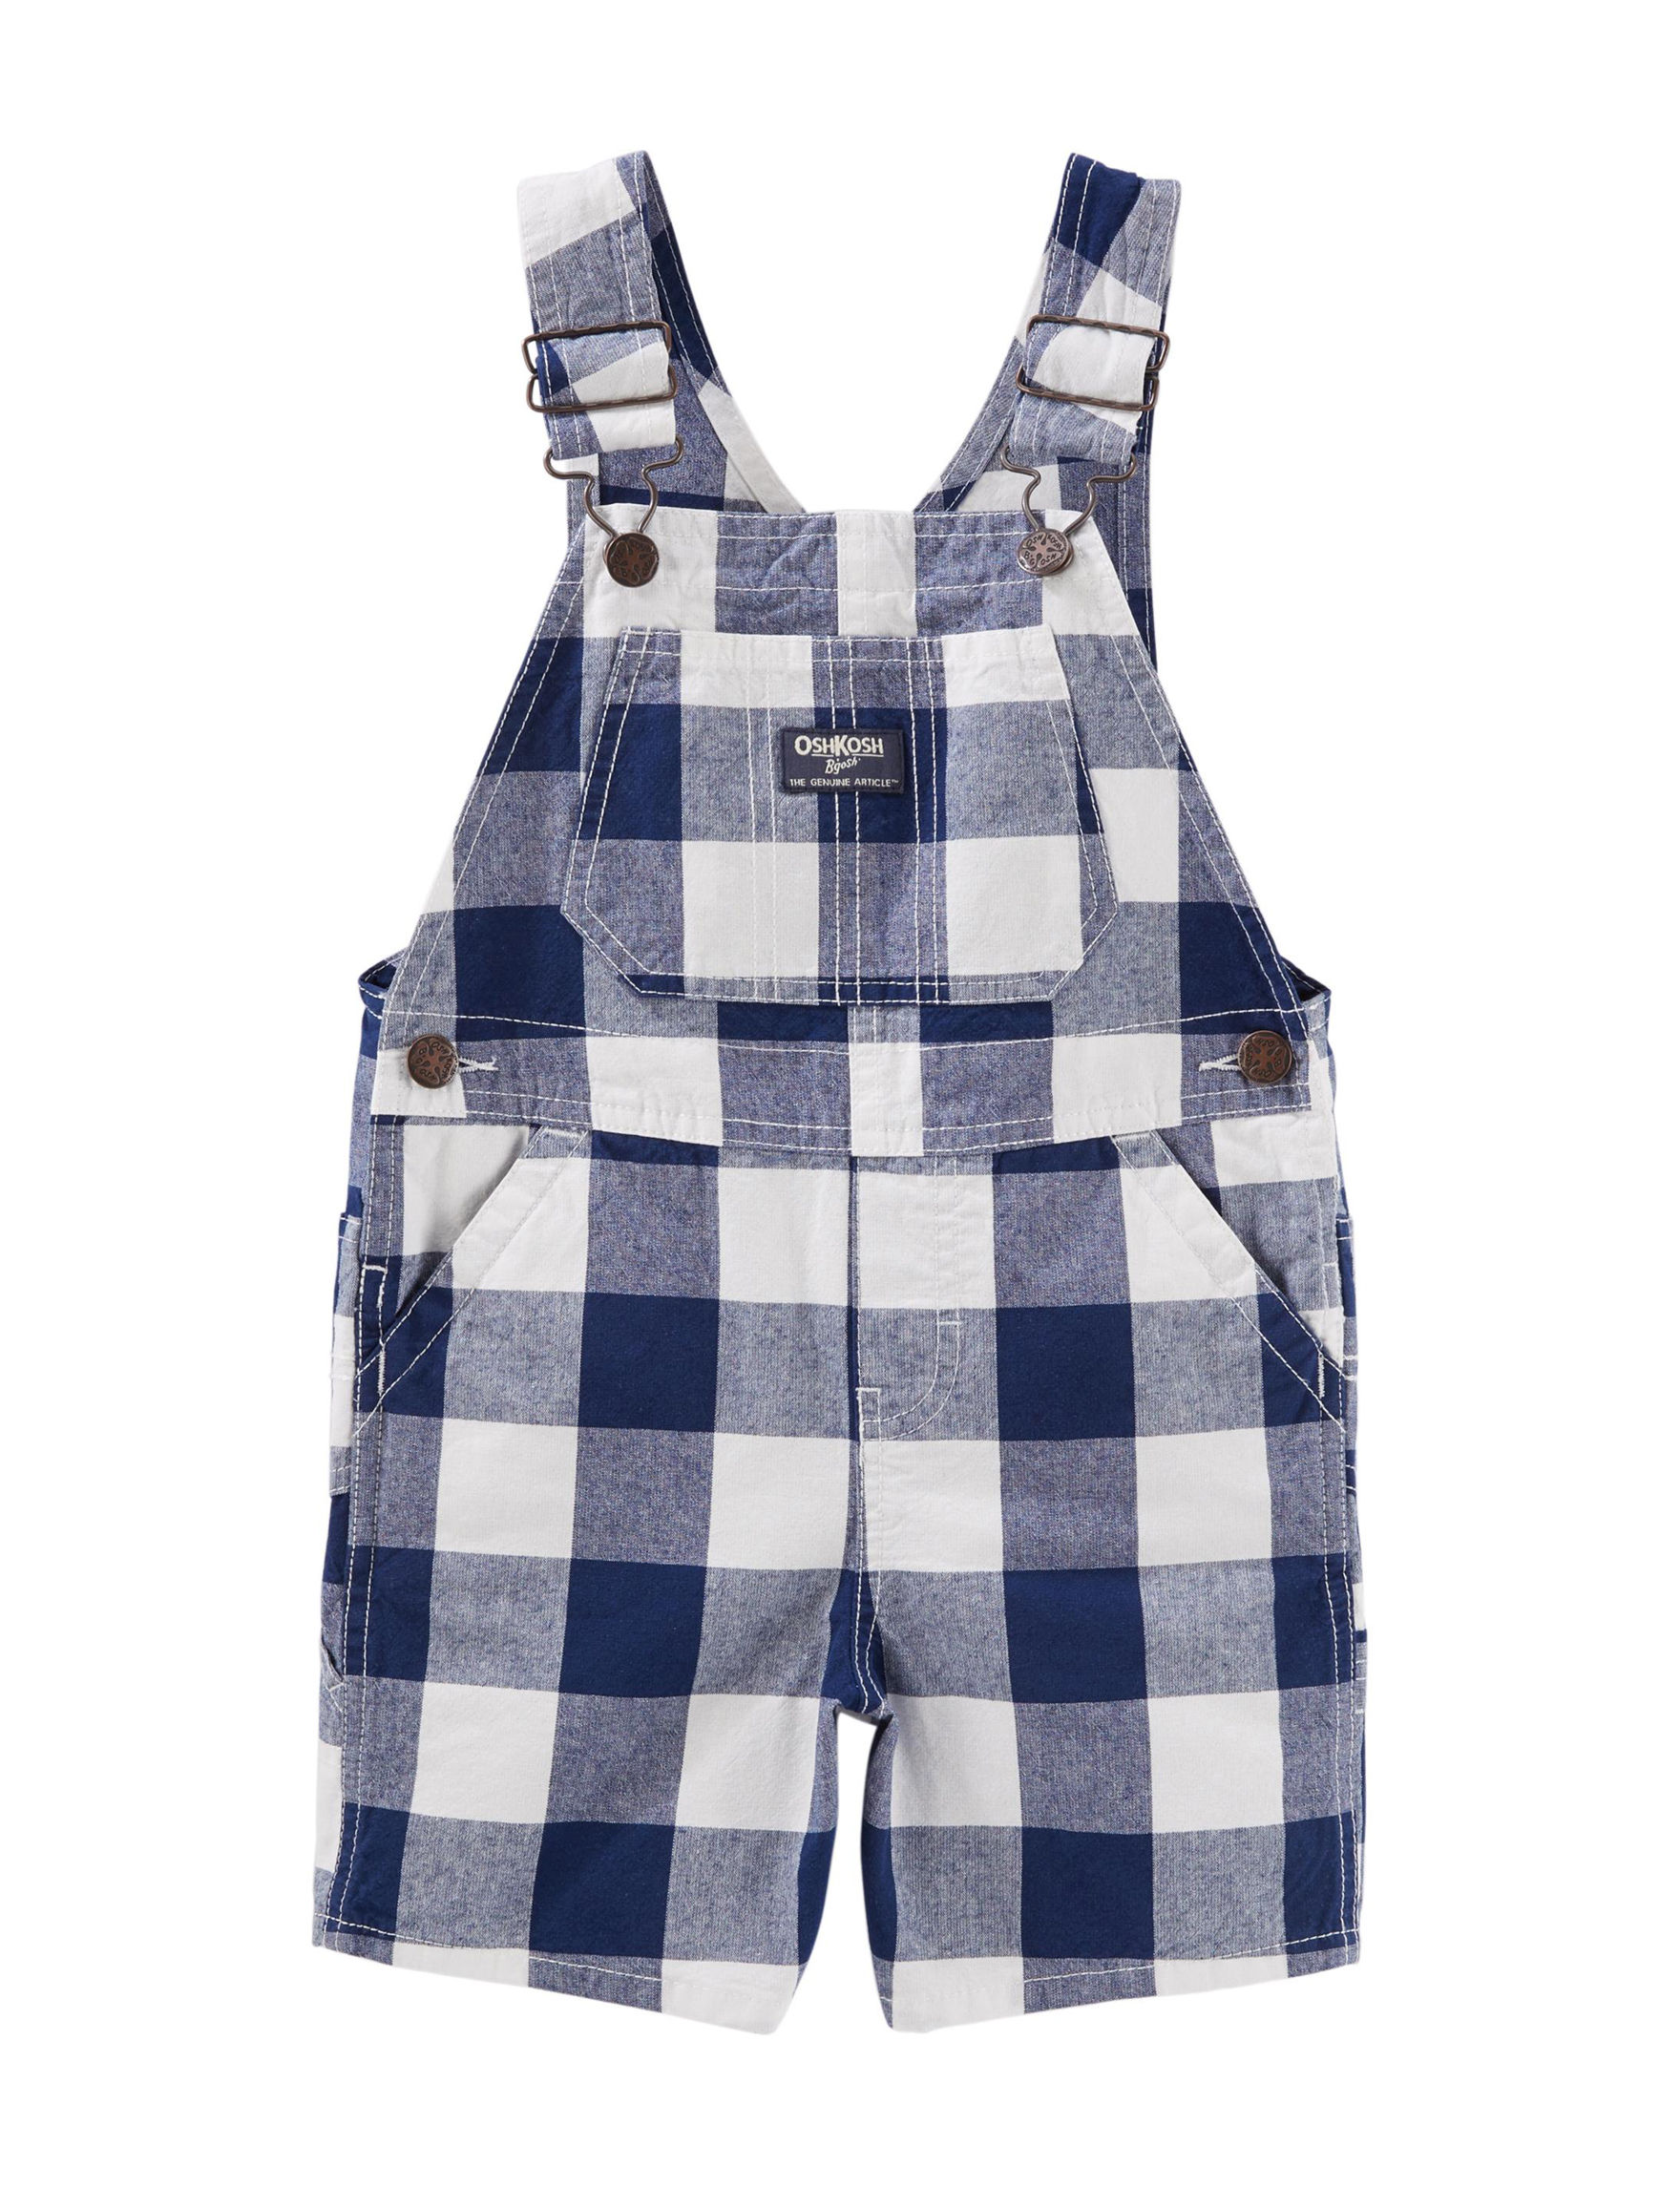 Oshkosh B'Gosh Blue Plaid